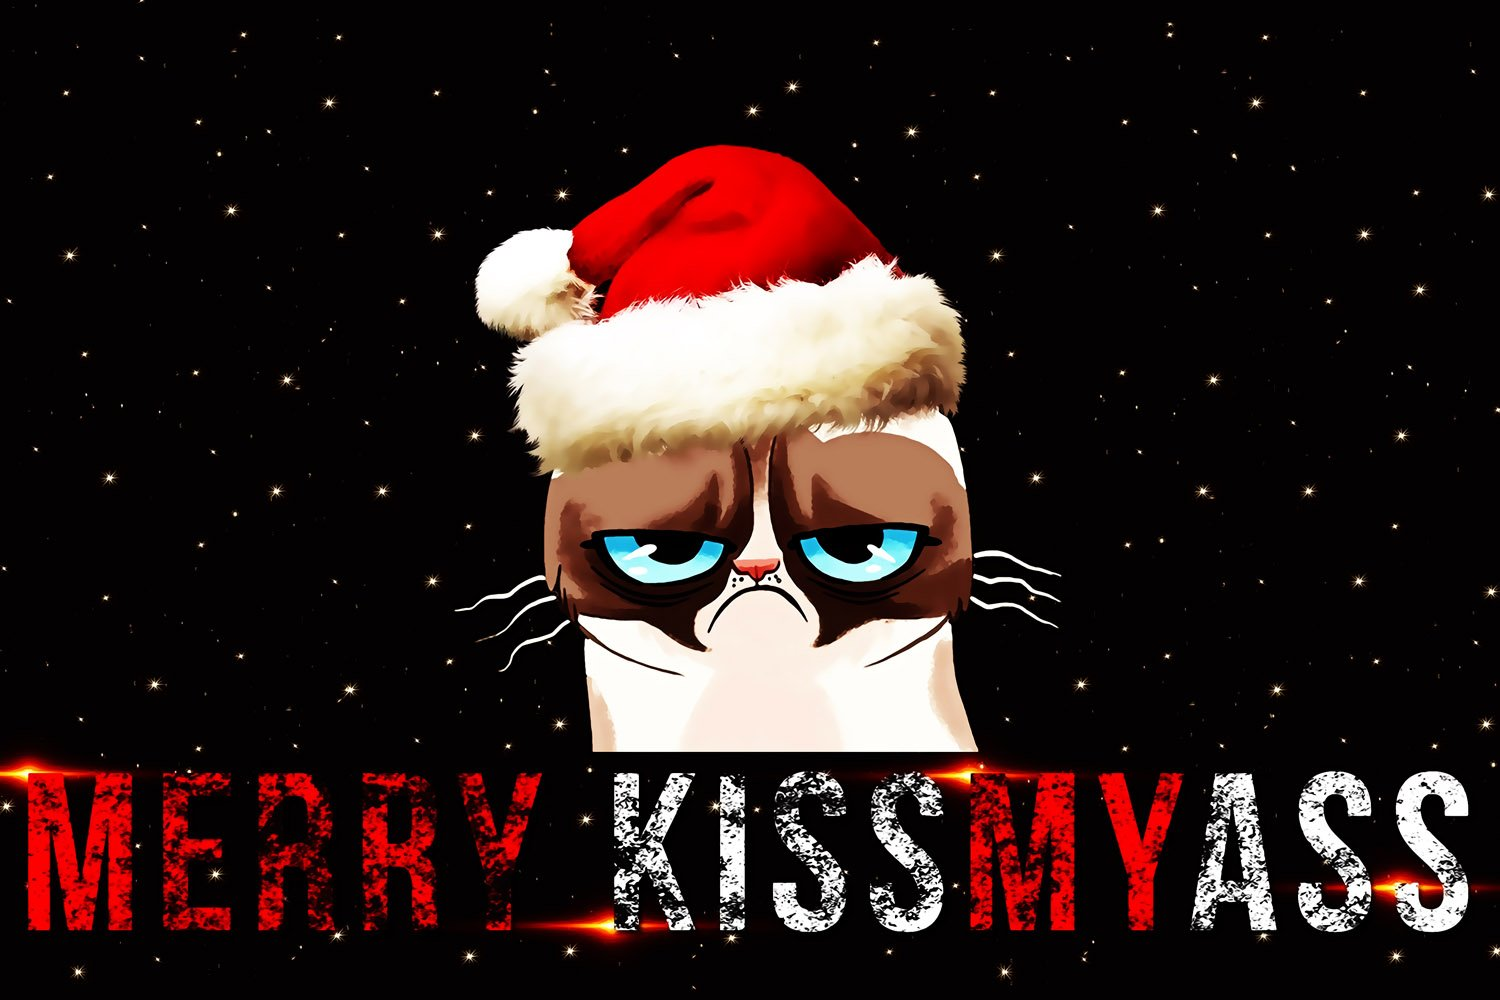 Grumpy Cat Quotes Merry Christmas Funny Prank Poster 24x36